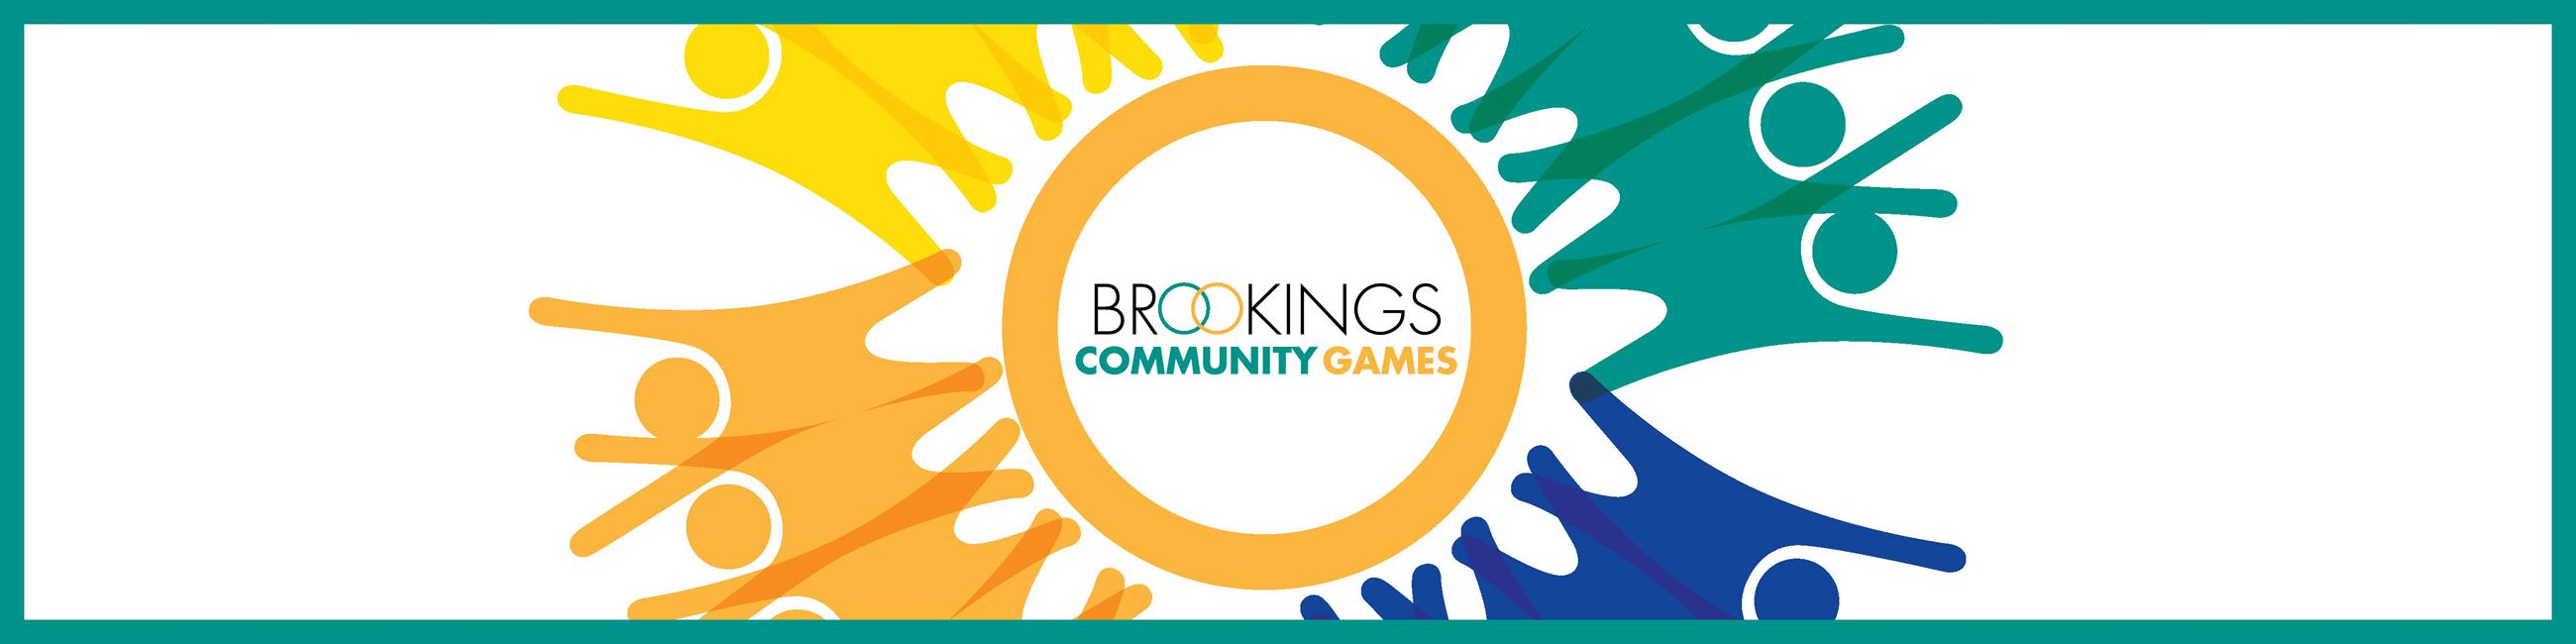 Website Header Graphic of Community Games logo with illustration of people holding hands